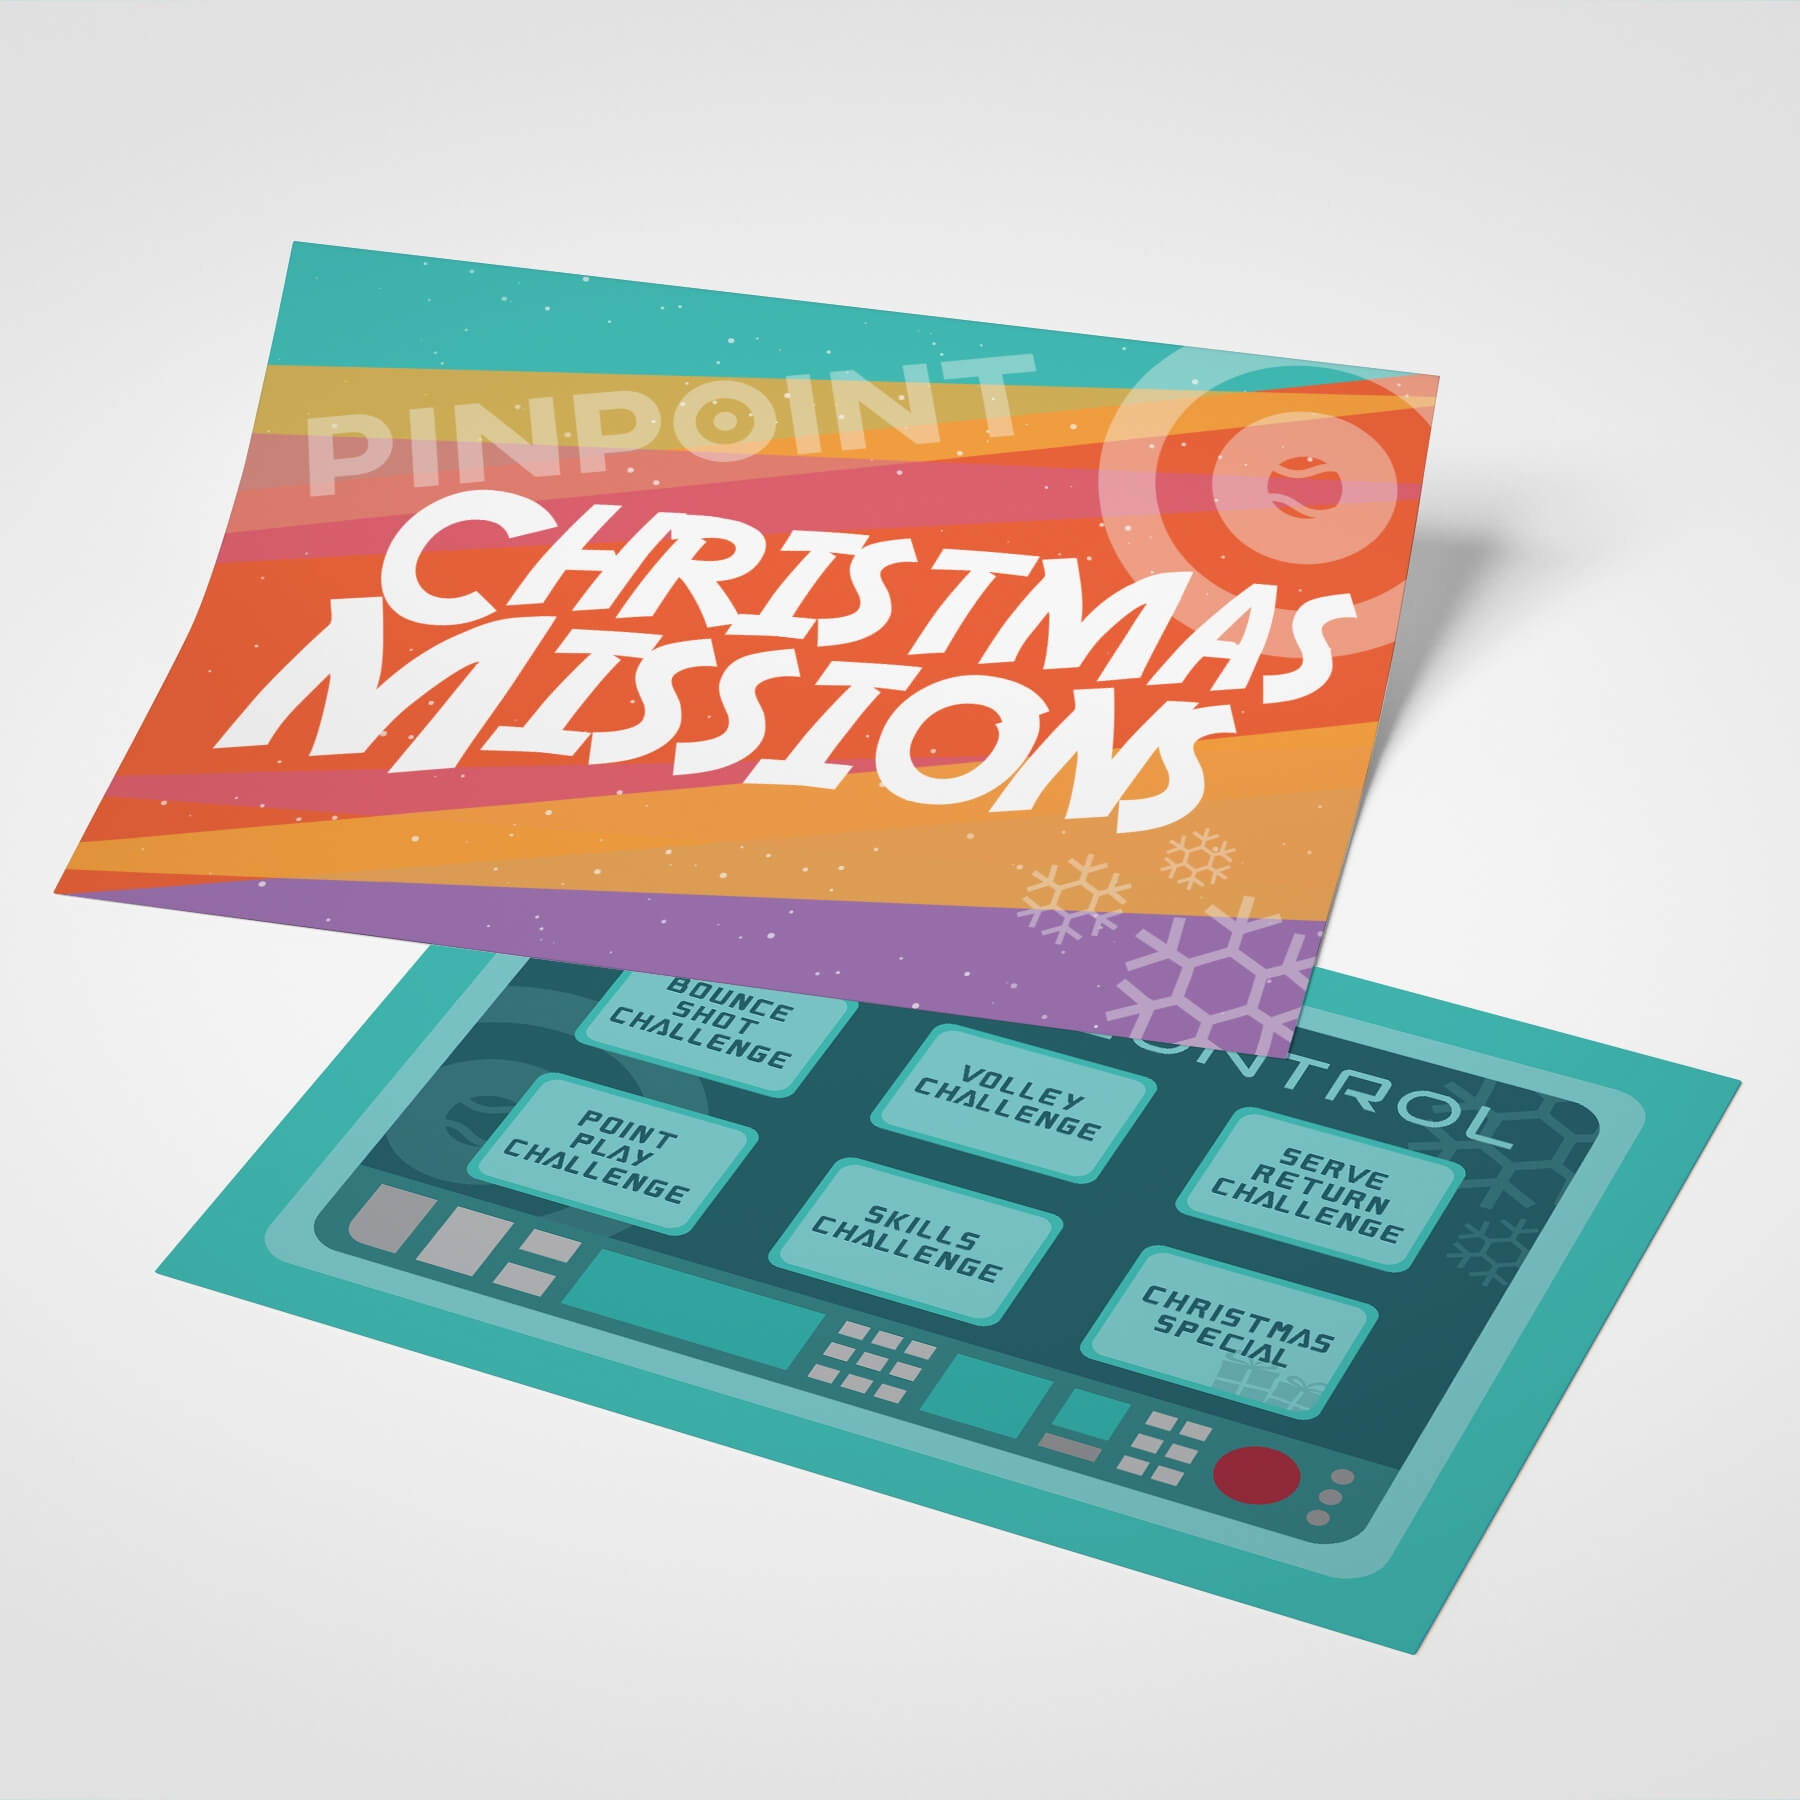 Pinpoint Flyer Mockup.jpg